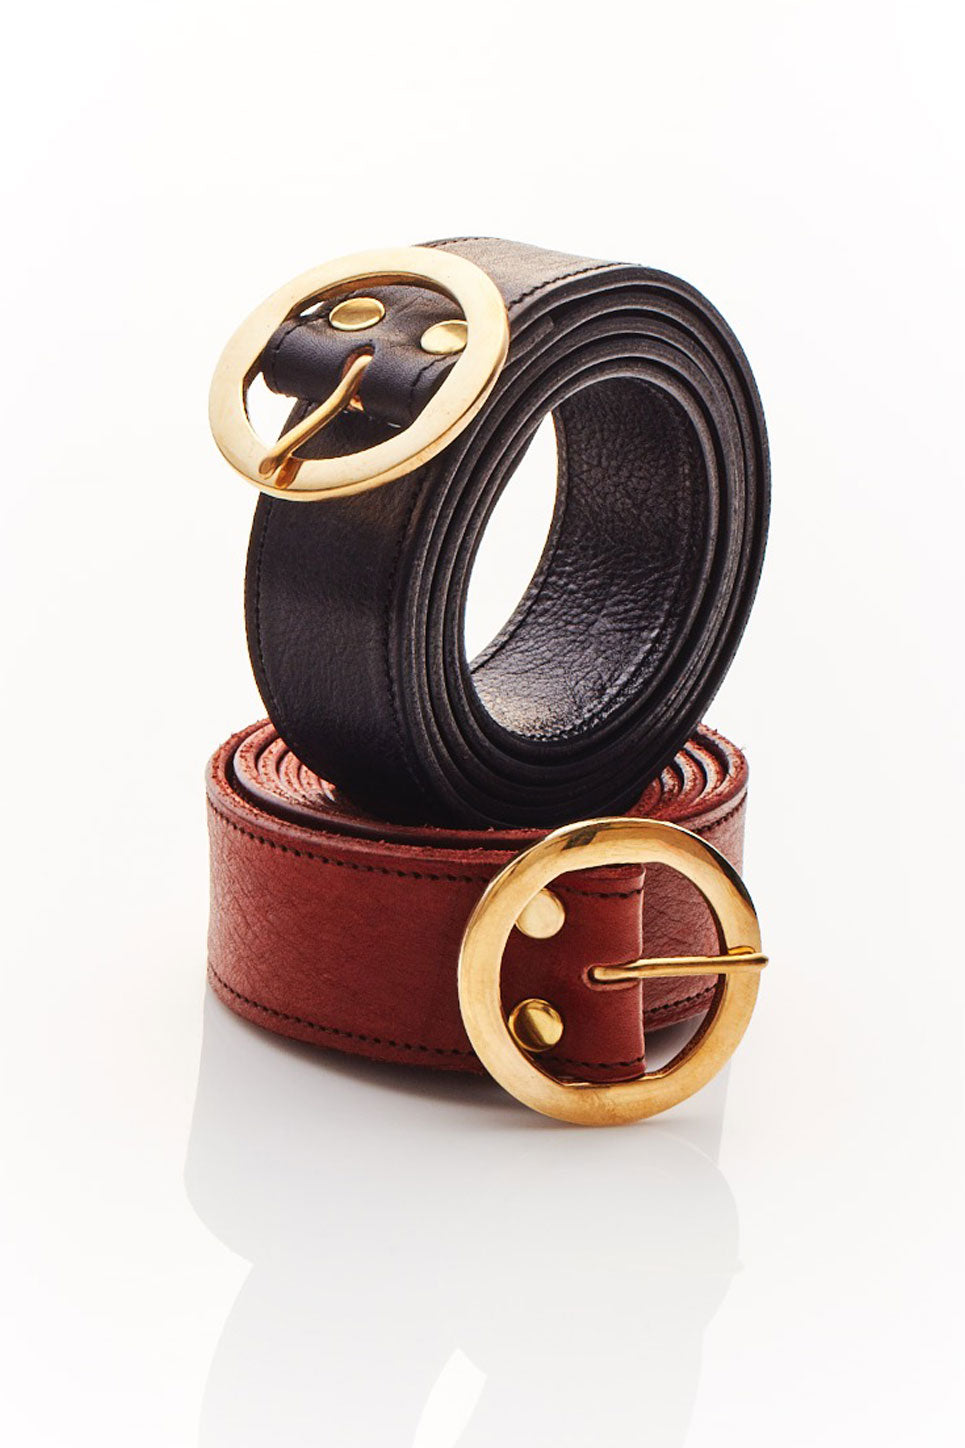 The Keller Belt in Chestnut